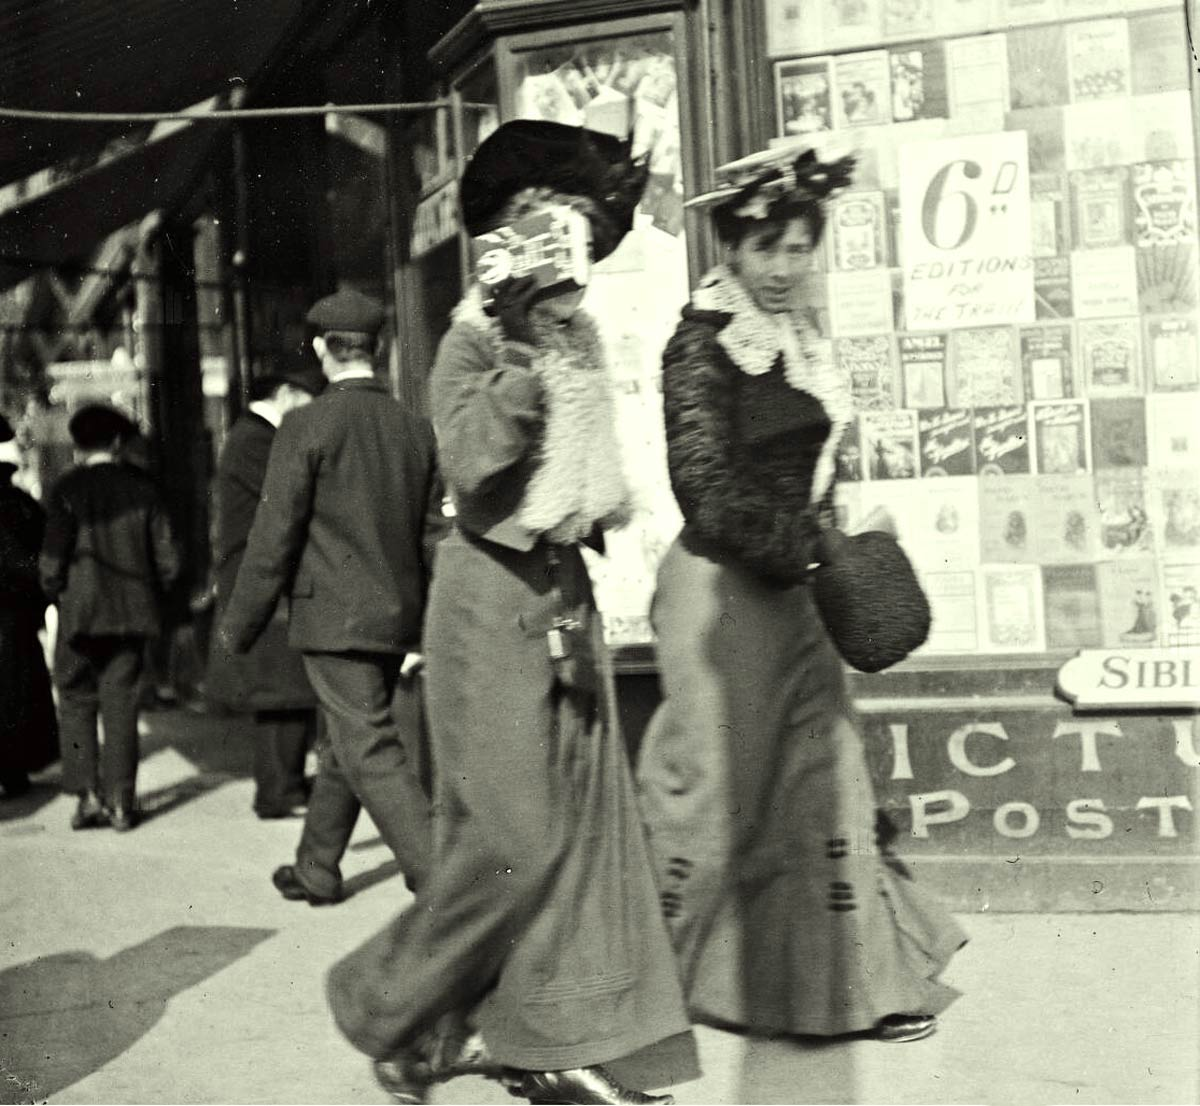 Two-women-leaving-Sibley-&-Co-Bookstore---Grafton-St-Dublin-1900--1904b